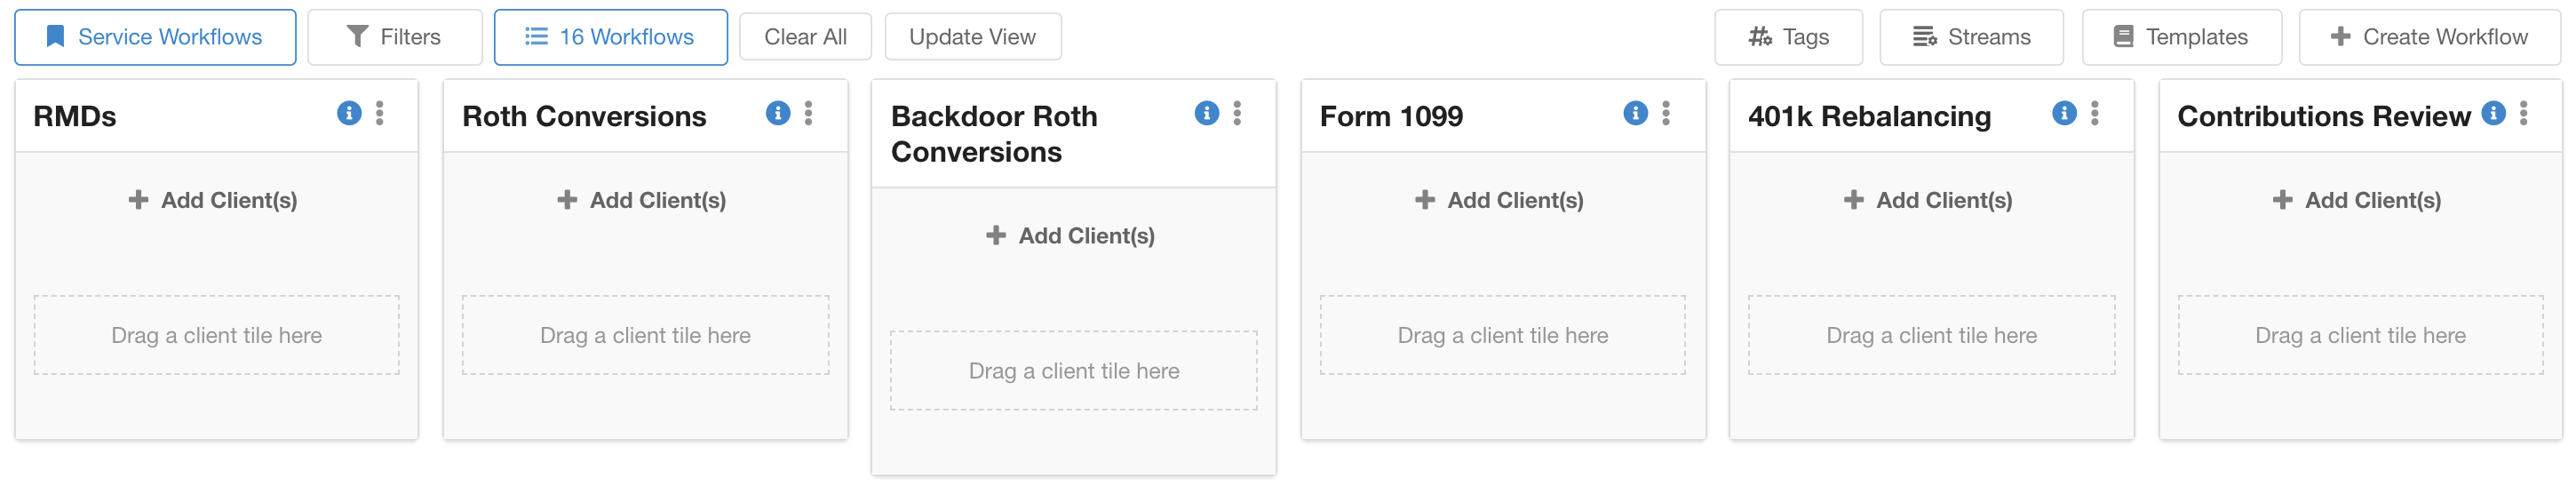 Service Workflows make it possible to create high-level structures to organize and keep track of client to-dos in Hubly